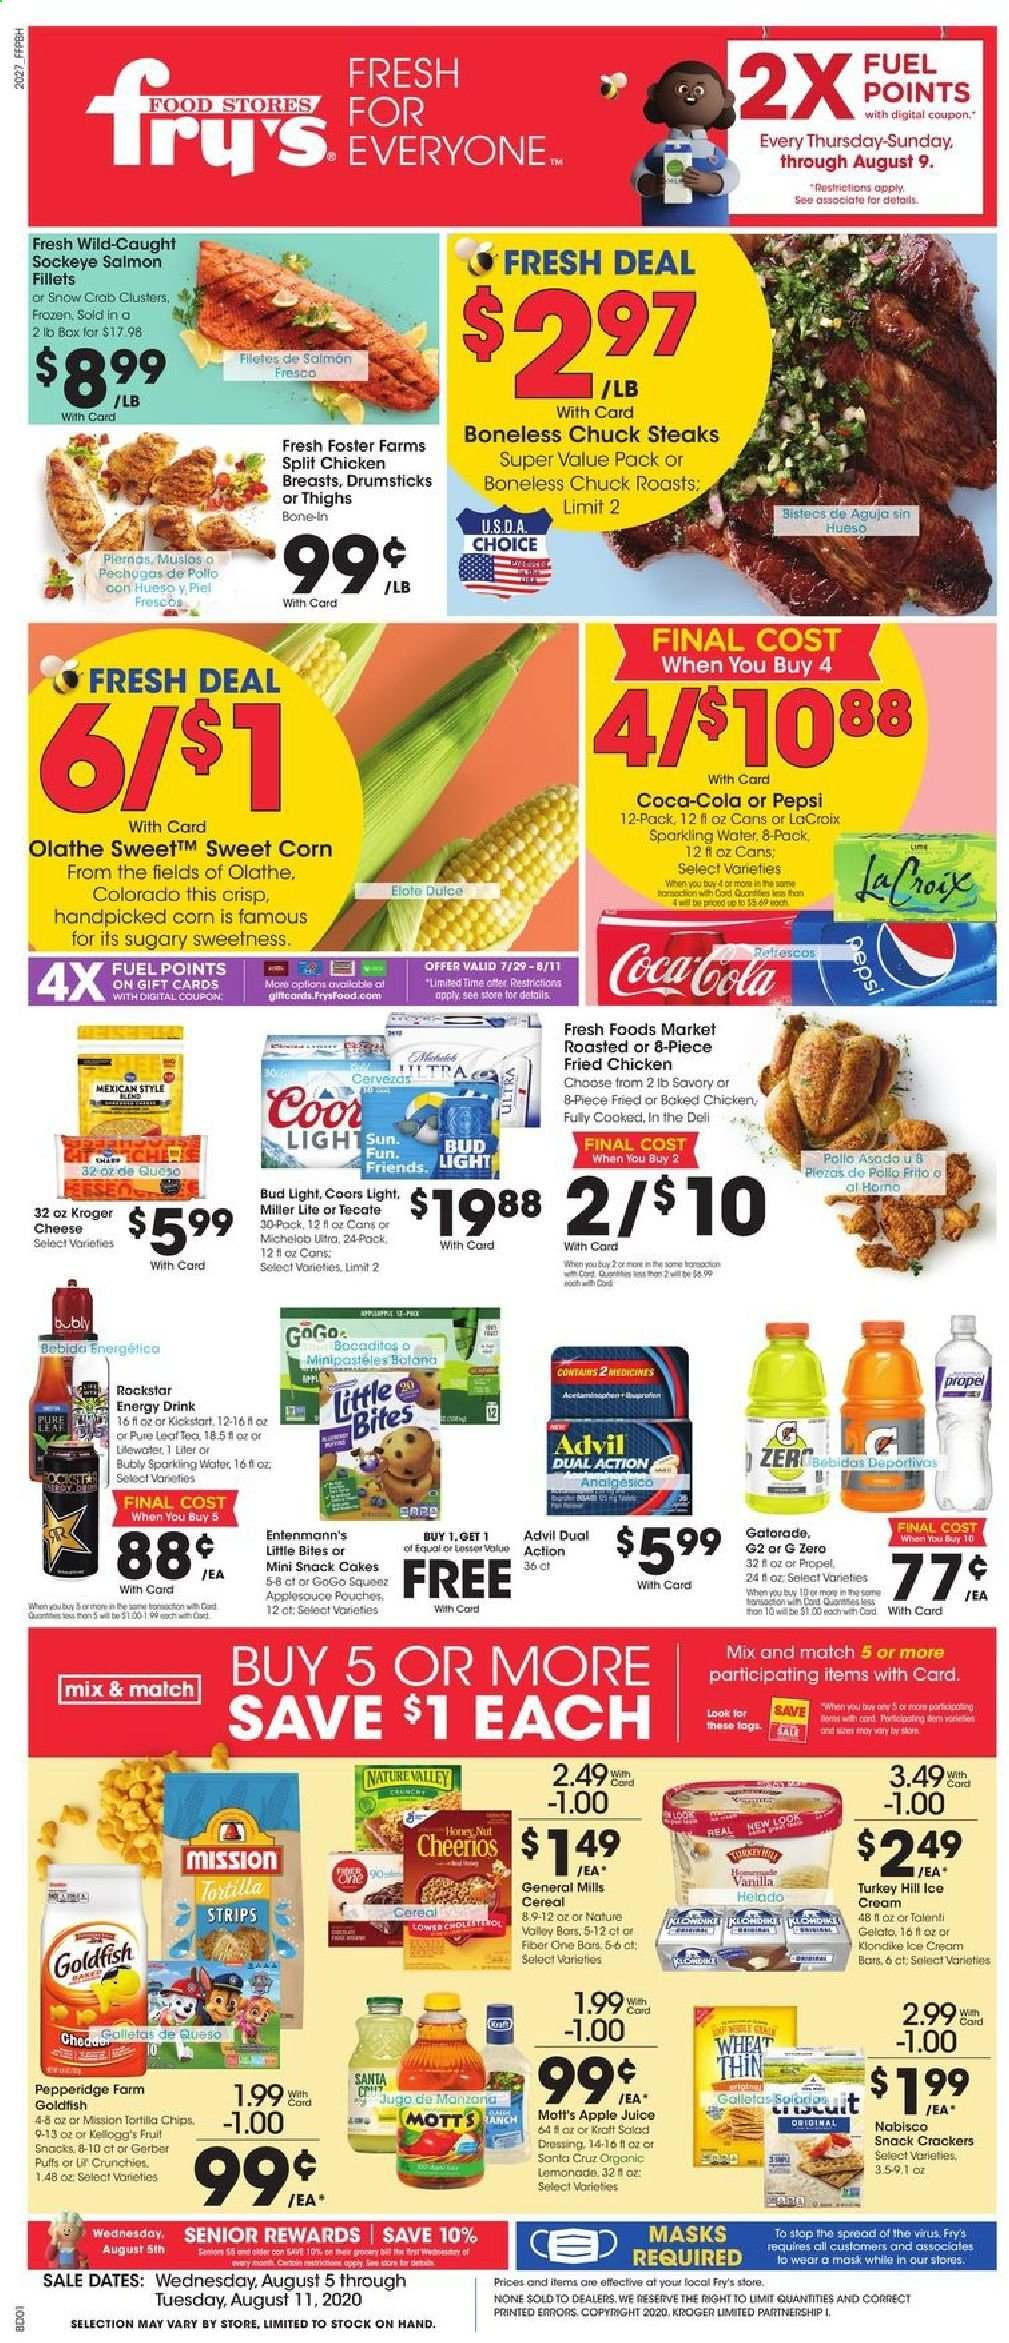 Fry's Flyer - 08.05.2020 - 08.11.2020 - Sales products - advil, apple juice, box, cereals, coca-cola, cod, corn, crackers, dates, fuel, gelato, gerber, lemonade, mask, miller lite, salad dressing, salmon, santa, tea, turkey, honey, ice cream, puffs, cheerios, chicken, chicken breast, pepsi, chips, cheese, juice, dressing, applesauce, snack, sparkling water, cereal, energy drink, bud light, salad, drink, bites, fruit, crab, miller, coors, michelob, fried chicken, chicken breasts. Page 1.